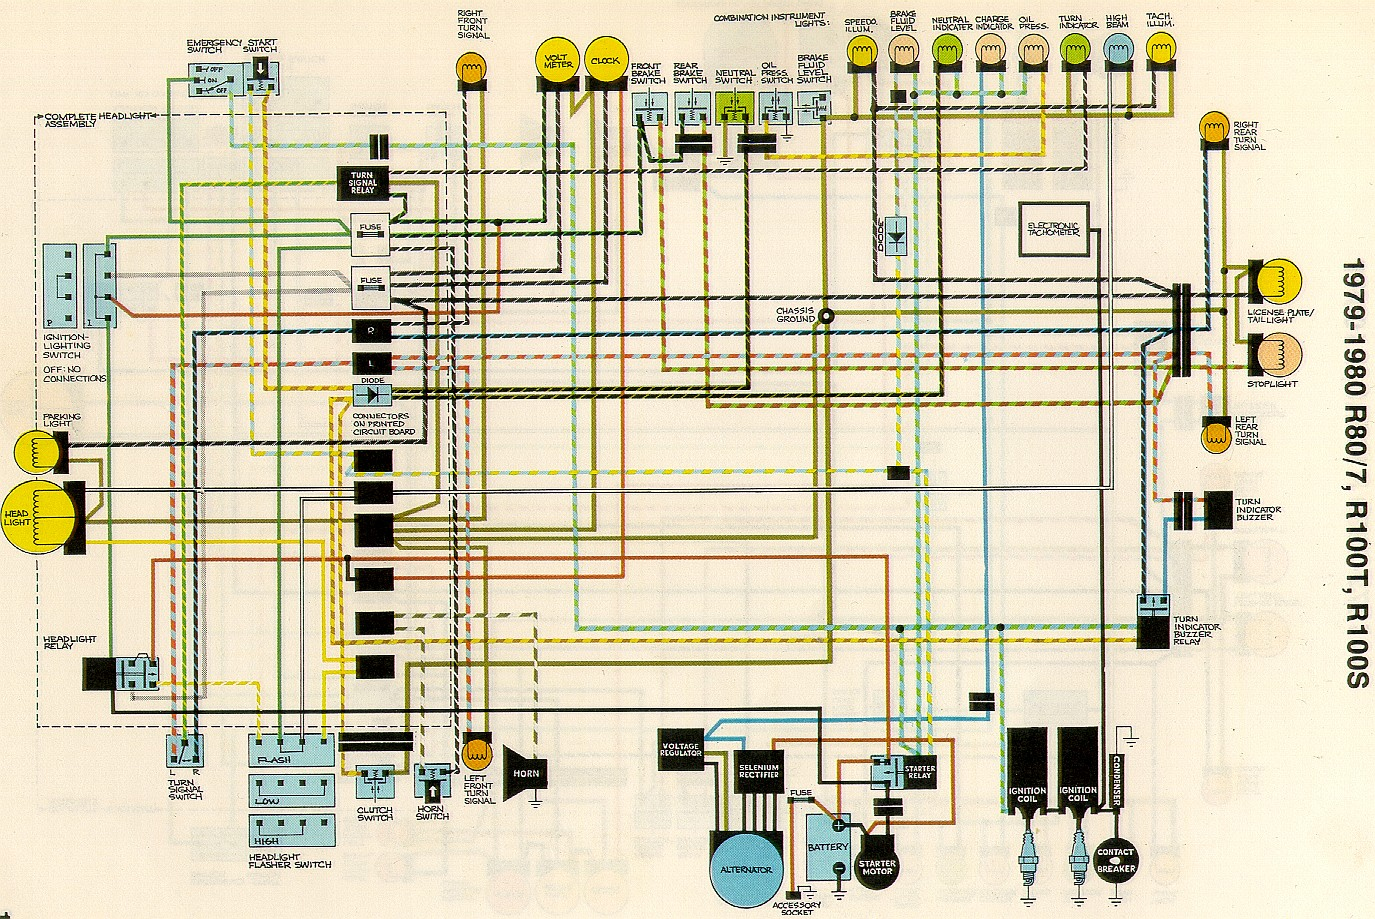 79 bmw r100 wiring diagram bmw r75 6 wiring diagram \u2022 wiring diagrams bmw r75/5 wiring diagram at gsmx.co